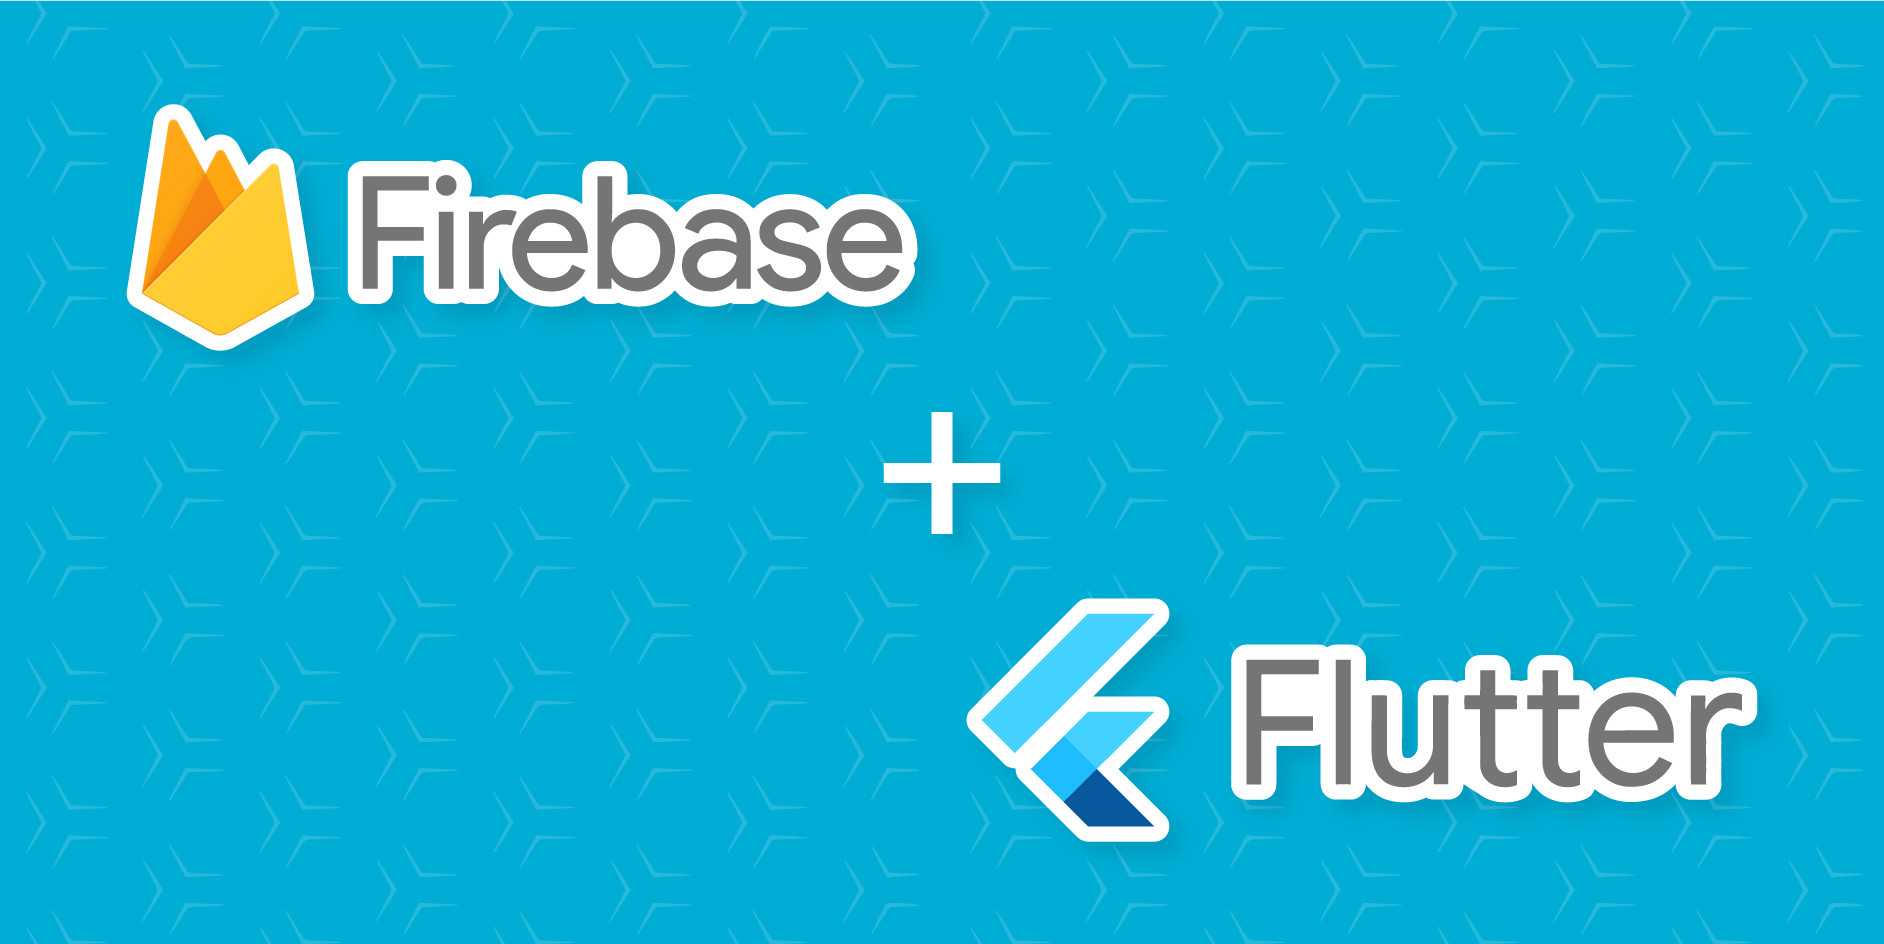 Firebase is integrated with Flutter